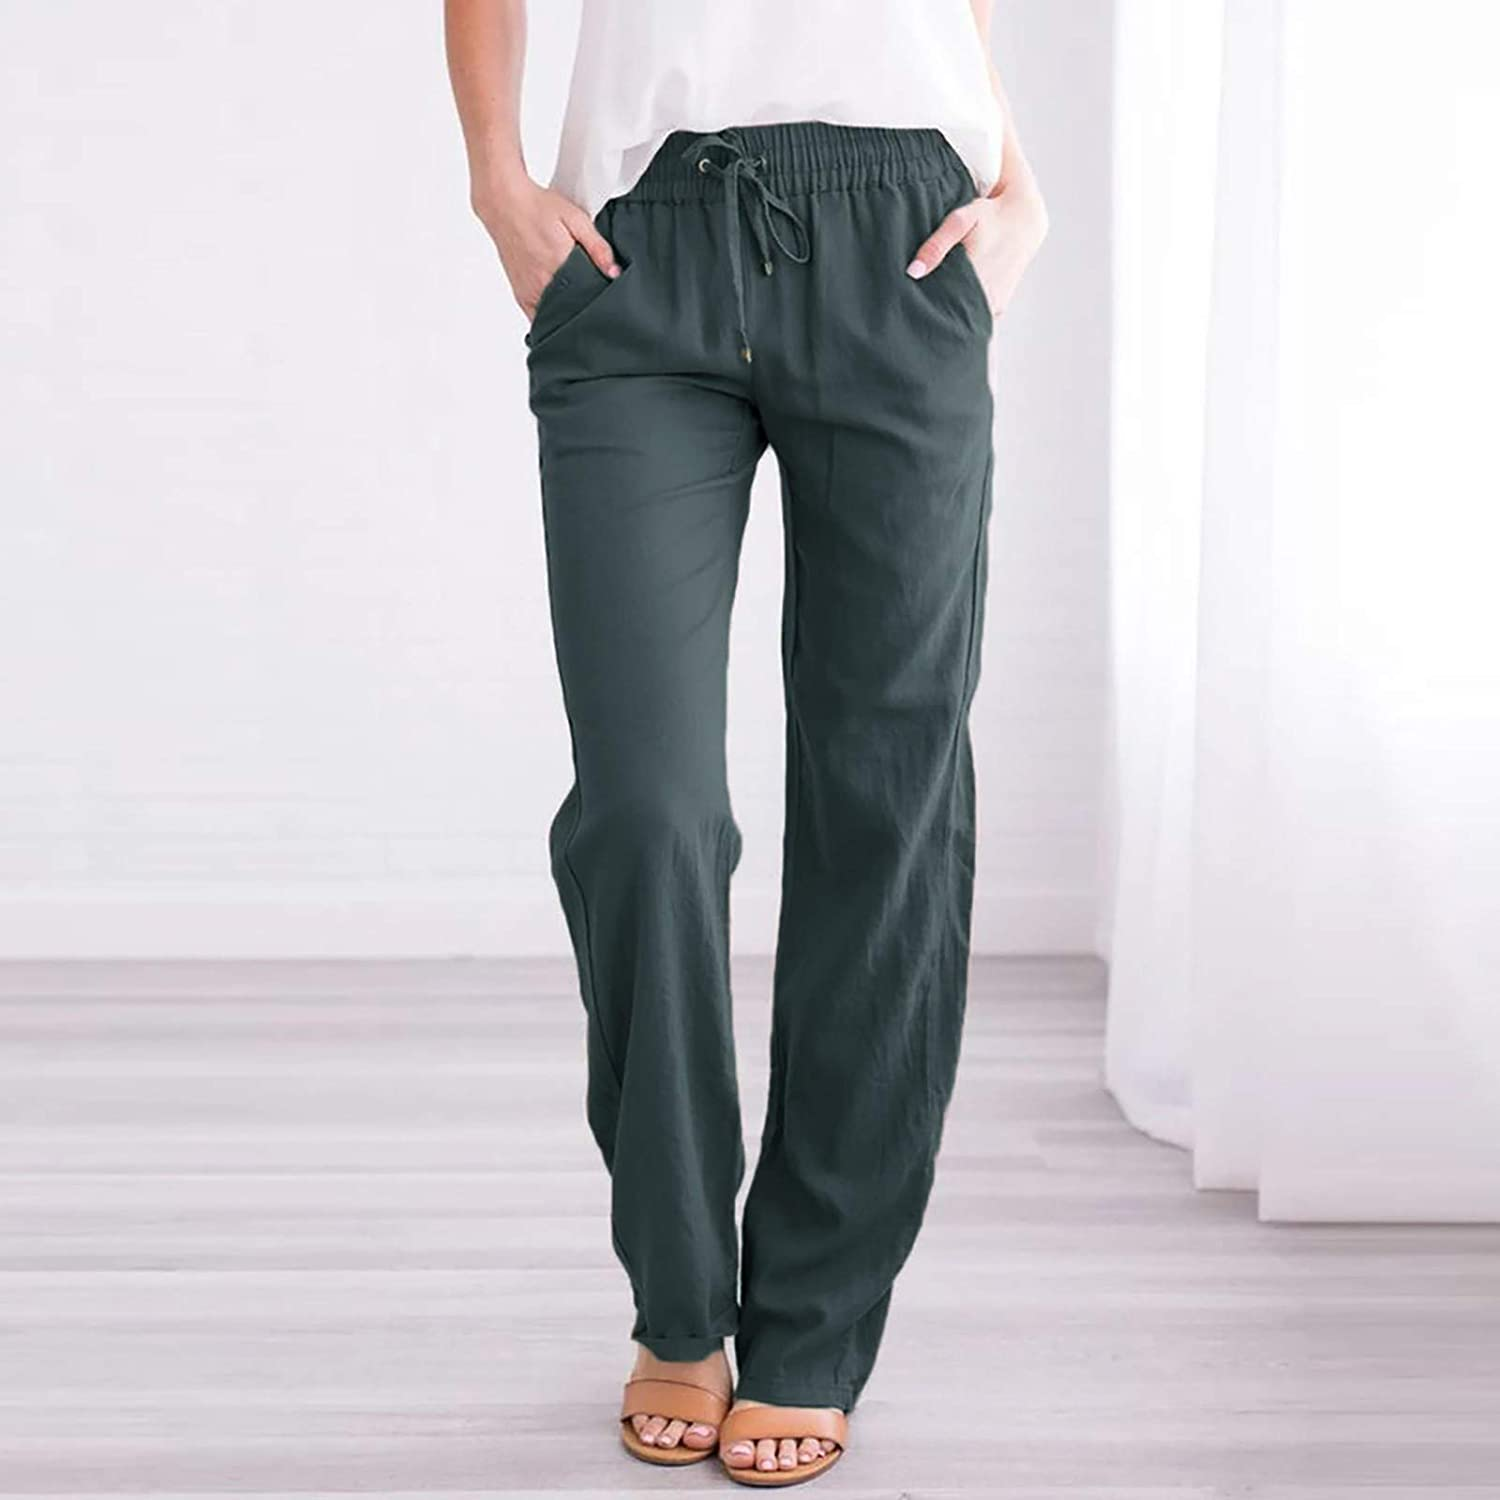 NP Women's Pants Waist Trousers Lady Loose Casual Pants Trousers